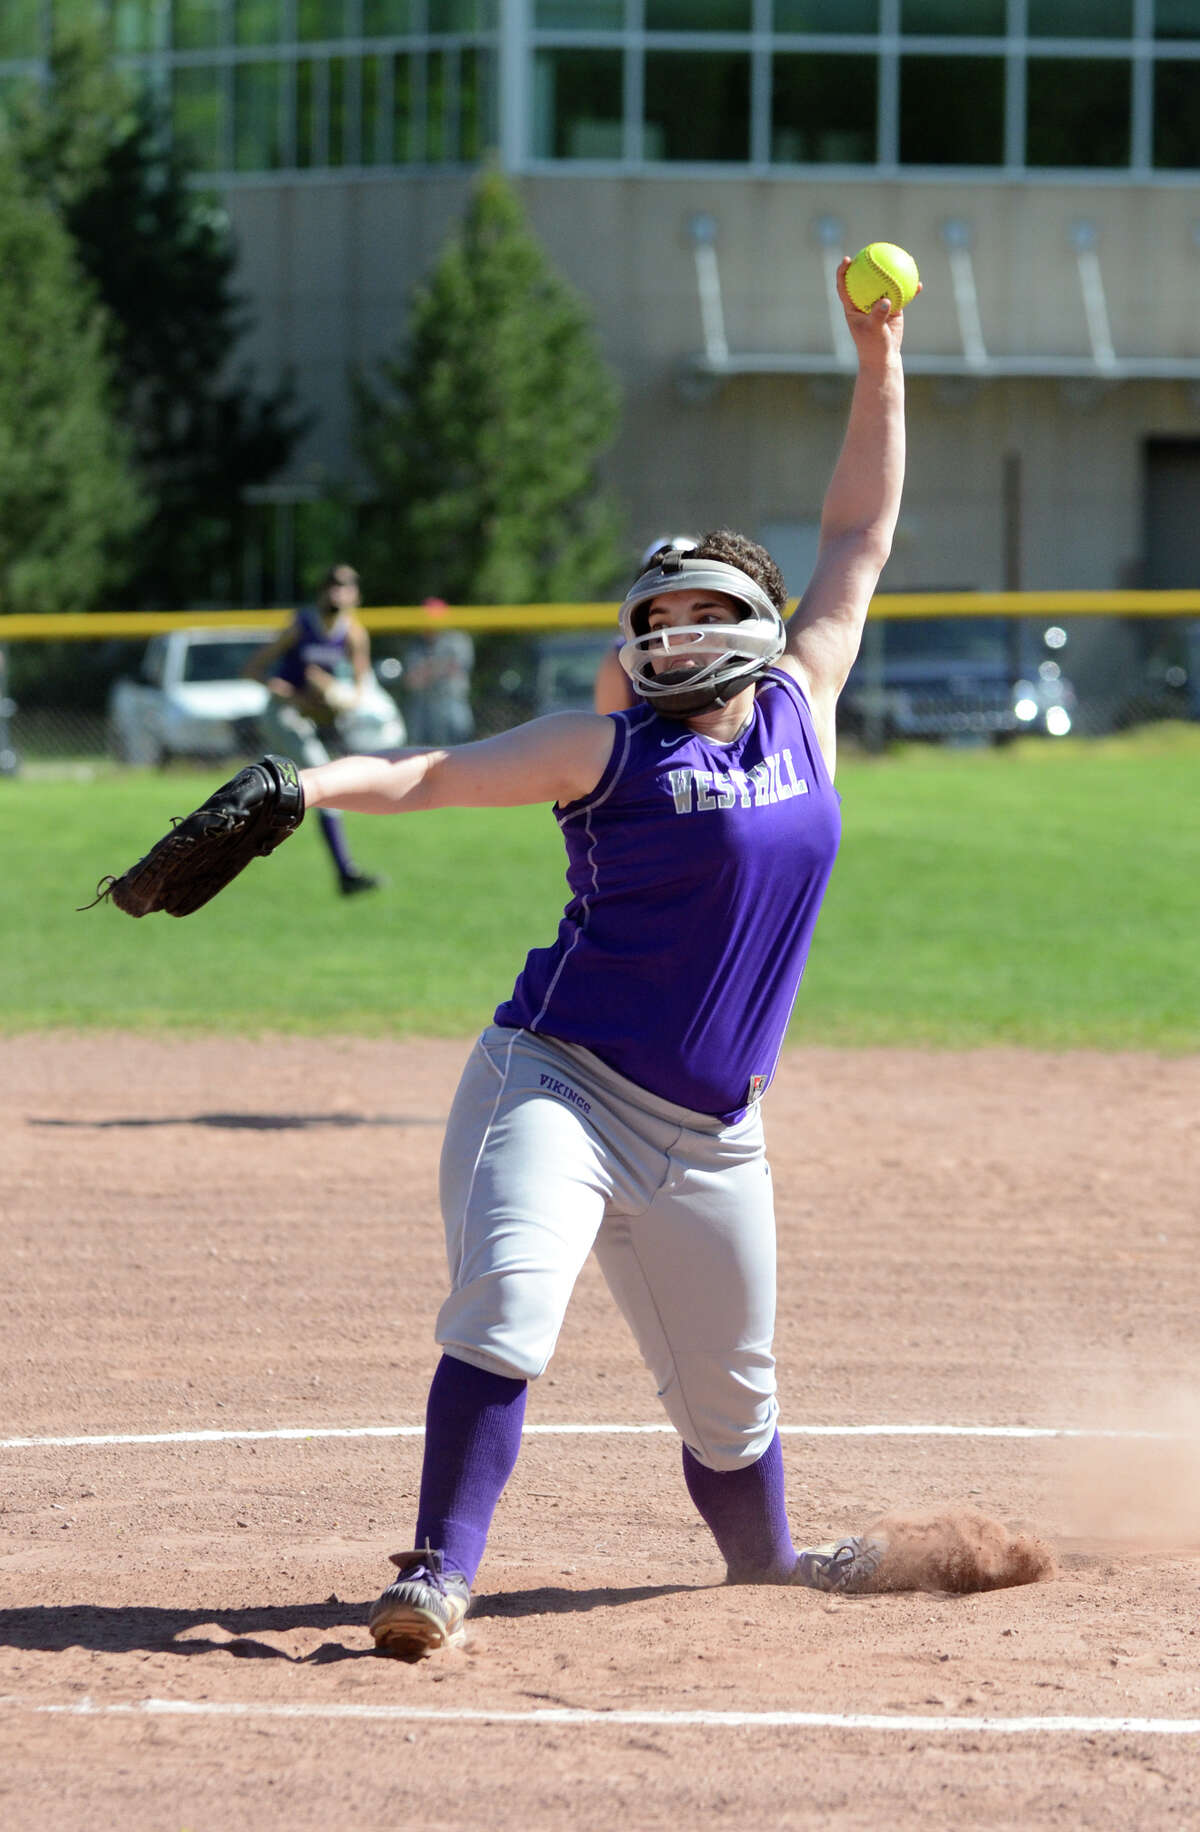 Westhill's Sadie Rose Apfel (25) throws out a pitch during the softball game against Stamford at Westhill High School in Stamford on Wednesday, May 1, 2013.